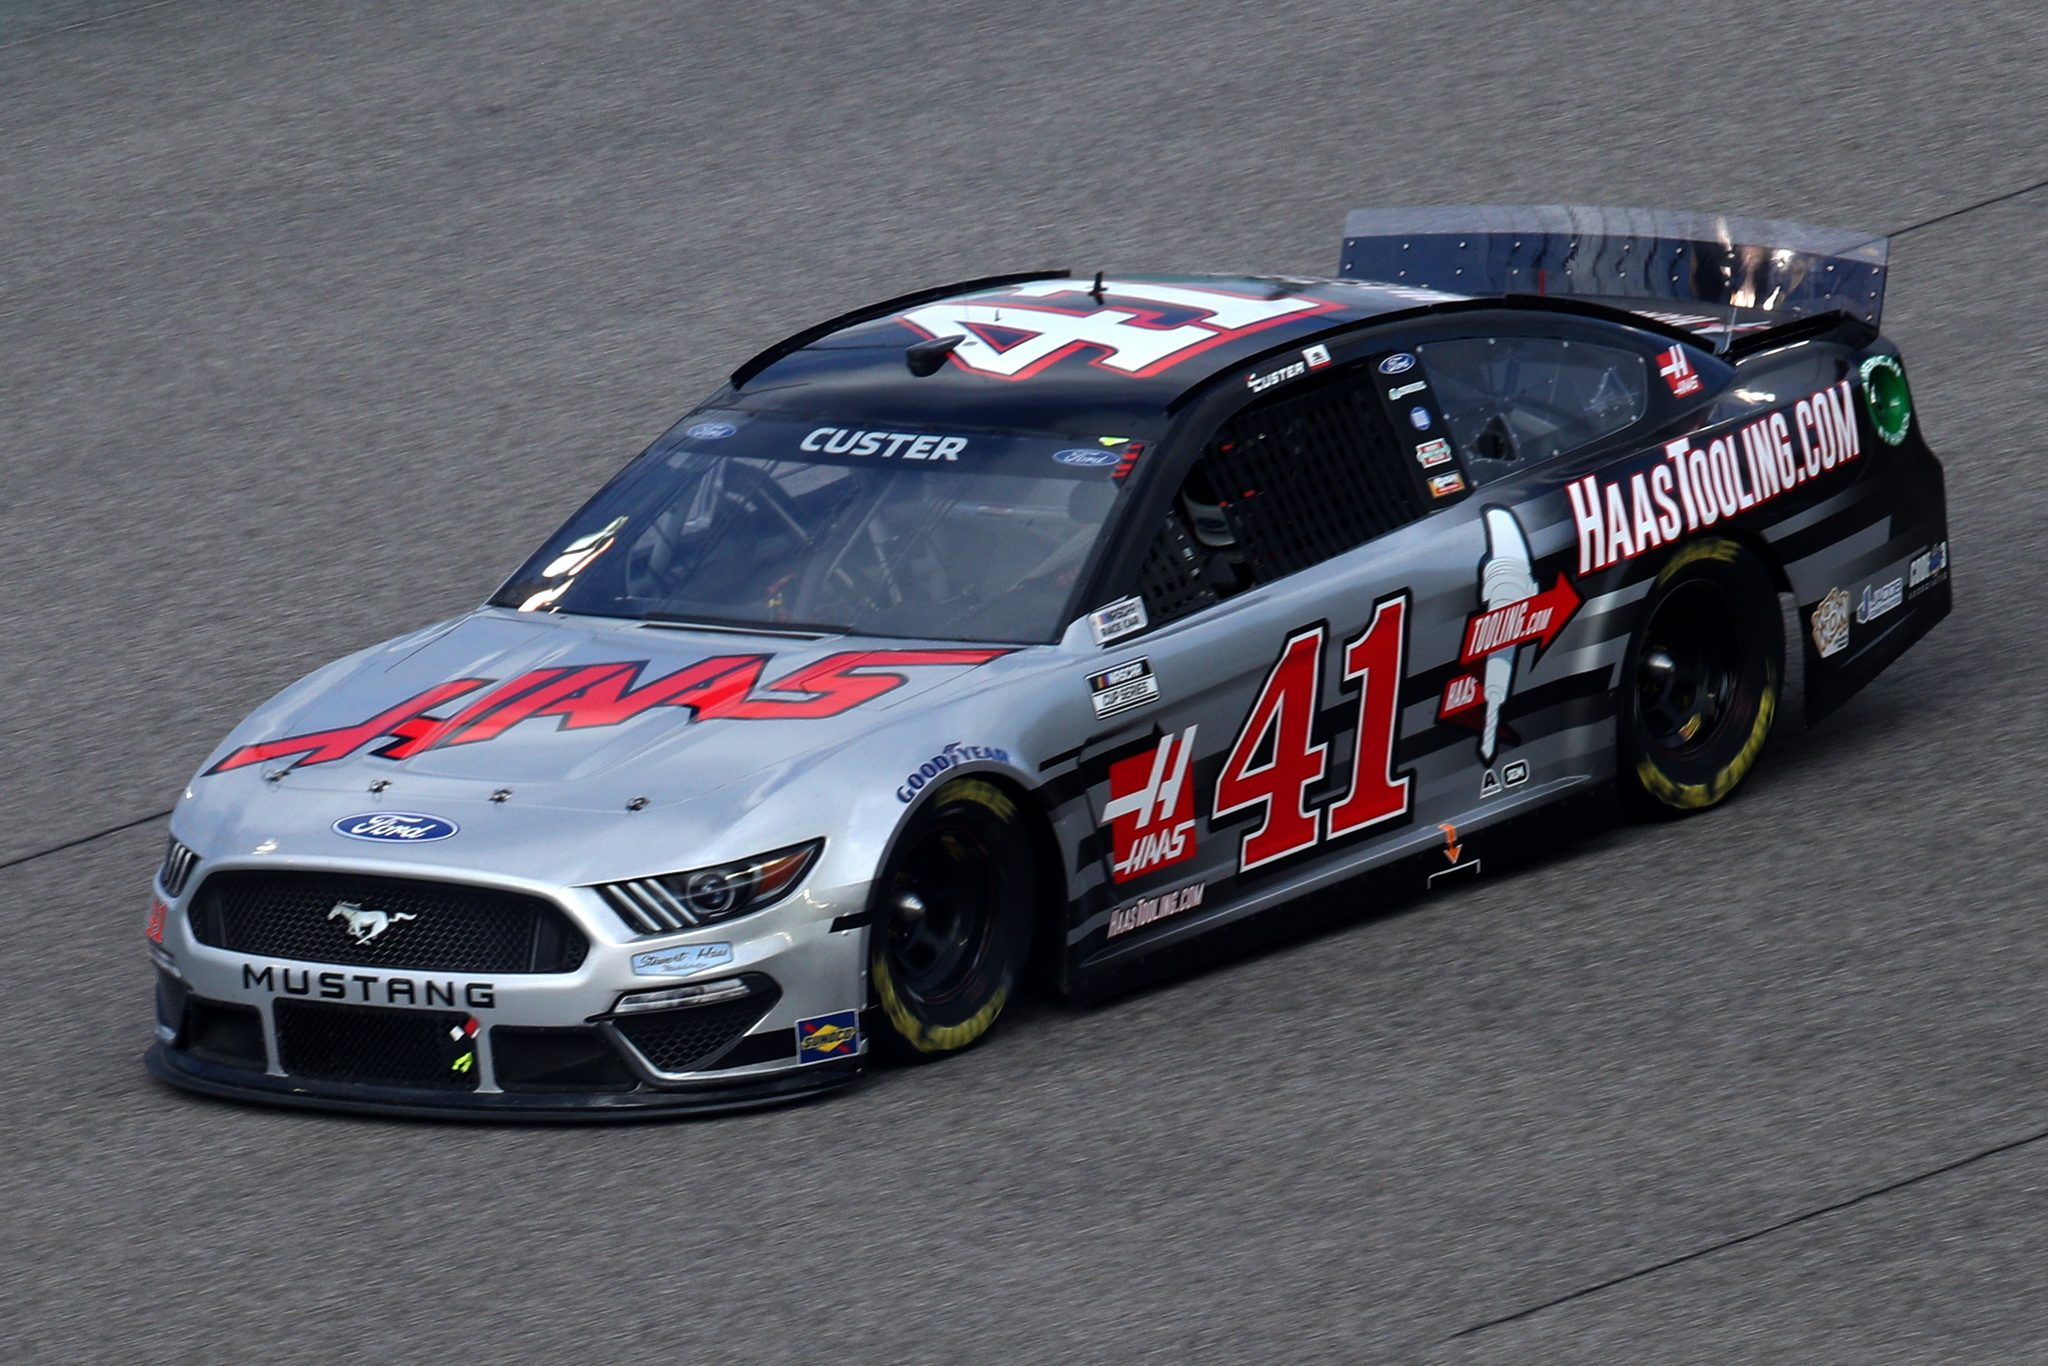 HOMESTEAD, FLORIDA - FEBRUARY 28: Cole Custer, driver of the #41 HaasTooling.com Ford, drives during the NASCAR Cup Series Dixie Vodka 400 at Homestead-Miami Speedway on February 28, 2021 in Homestead, Florida. (Photo by Sean Gardner/Getty Images) | Getty Images